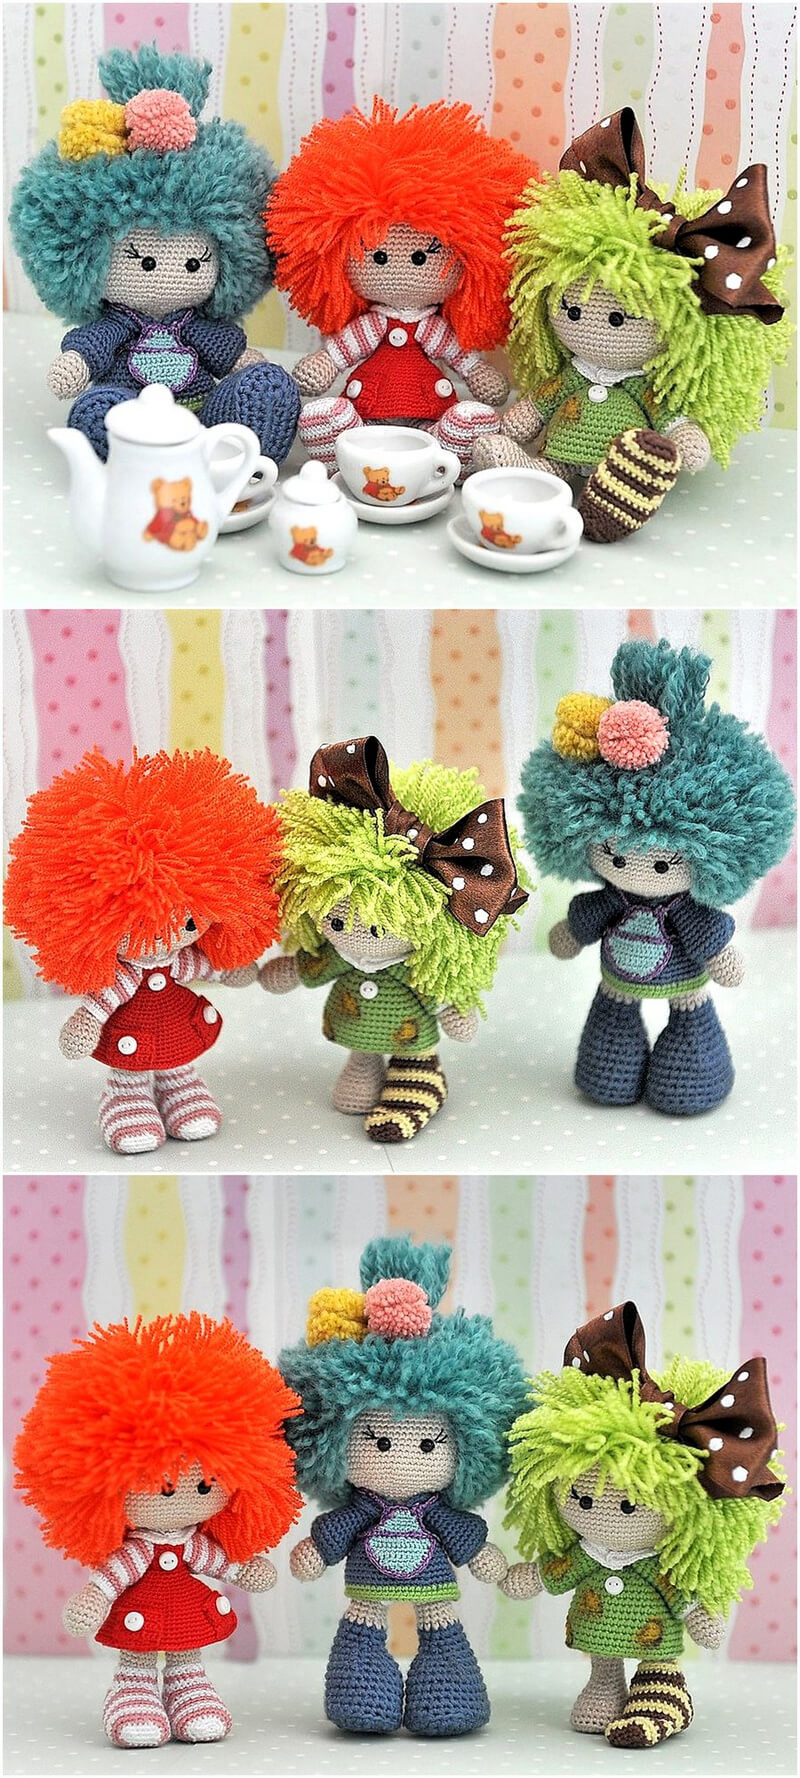 crochet amigurumi ideas 21